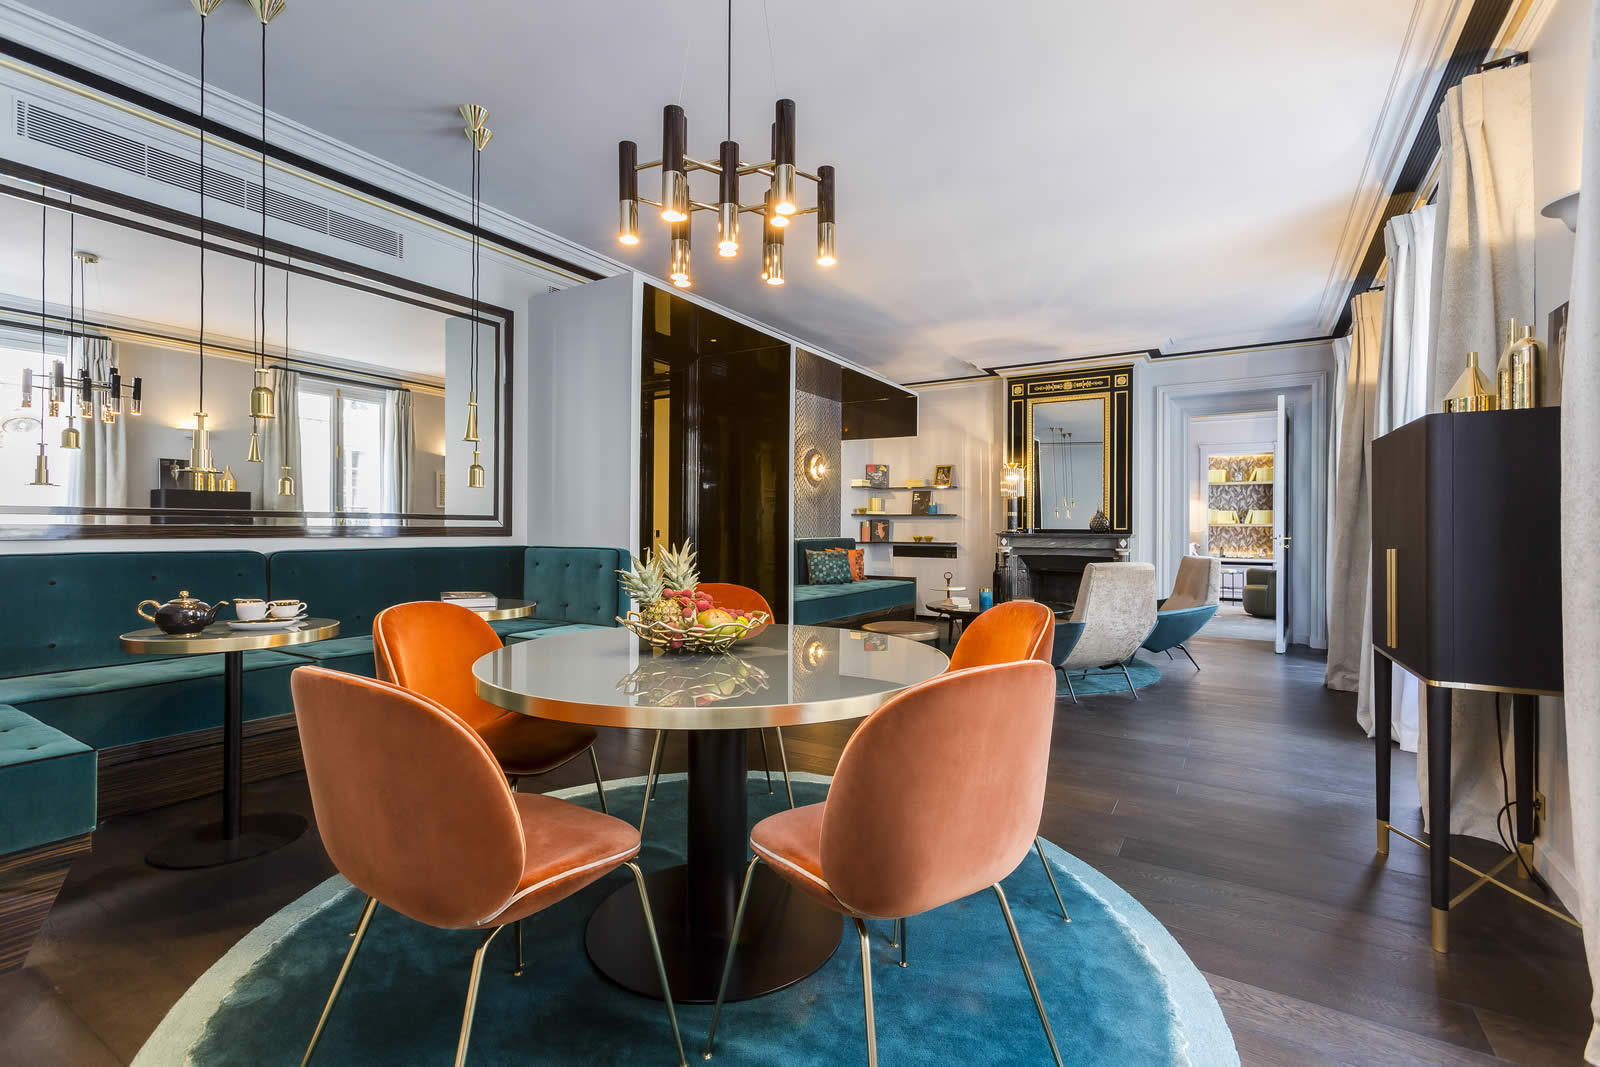 Interview with g rard faivre on the art homes concept pairs for Appartement luxe